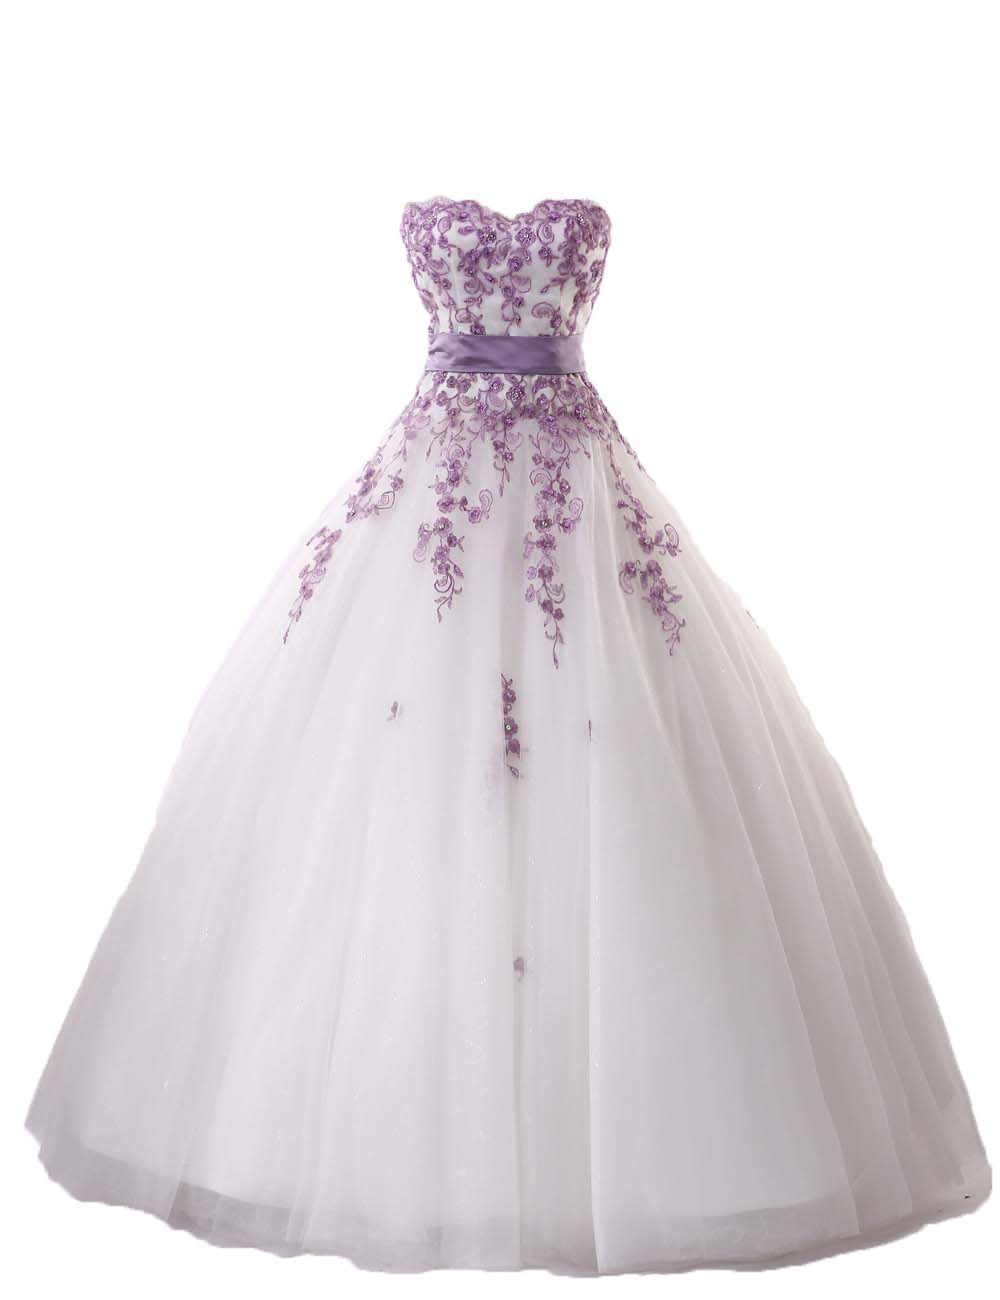 Buy new elegant lilac lace wedding dress for Elegant ball gown wedding dresses